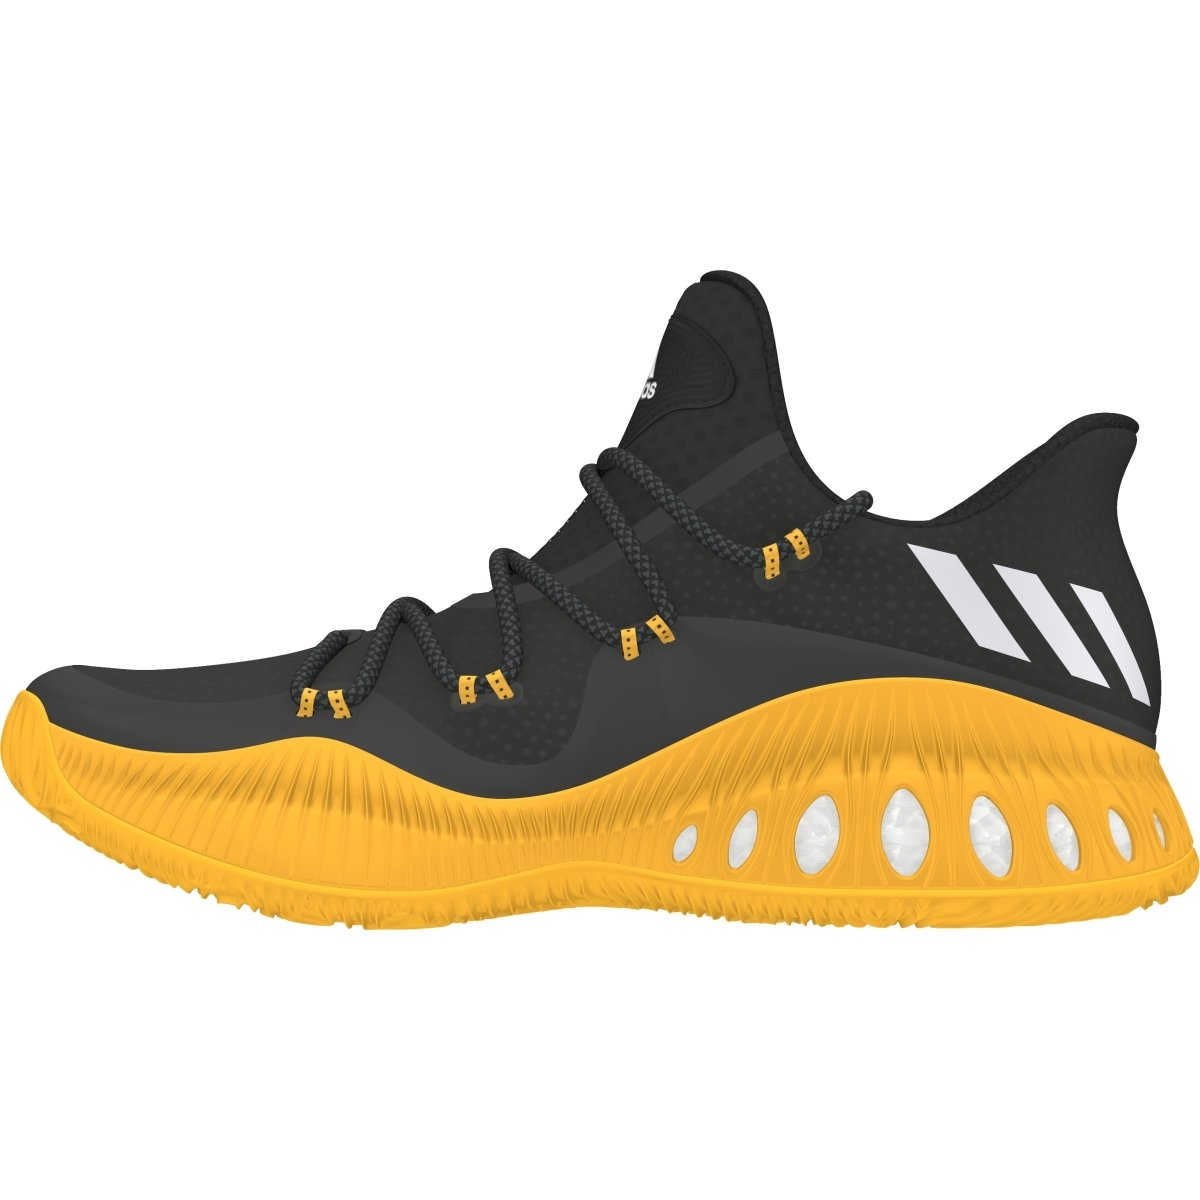 new product bf6ef af9fa Amazon.com  adidas Crazy Explosive Low Shoe Mens Basketball 9.5 Black-White-Gold   Basketball